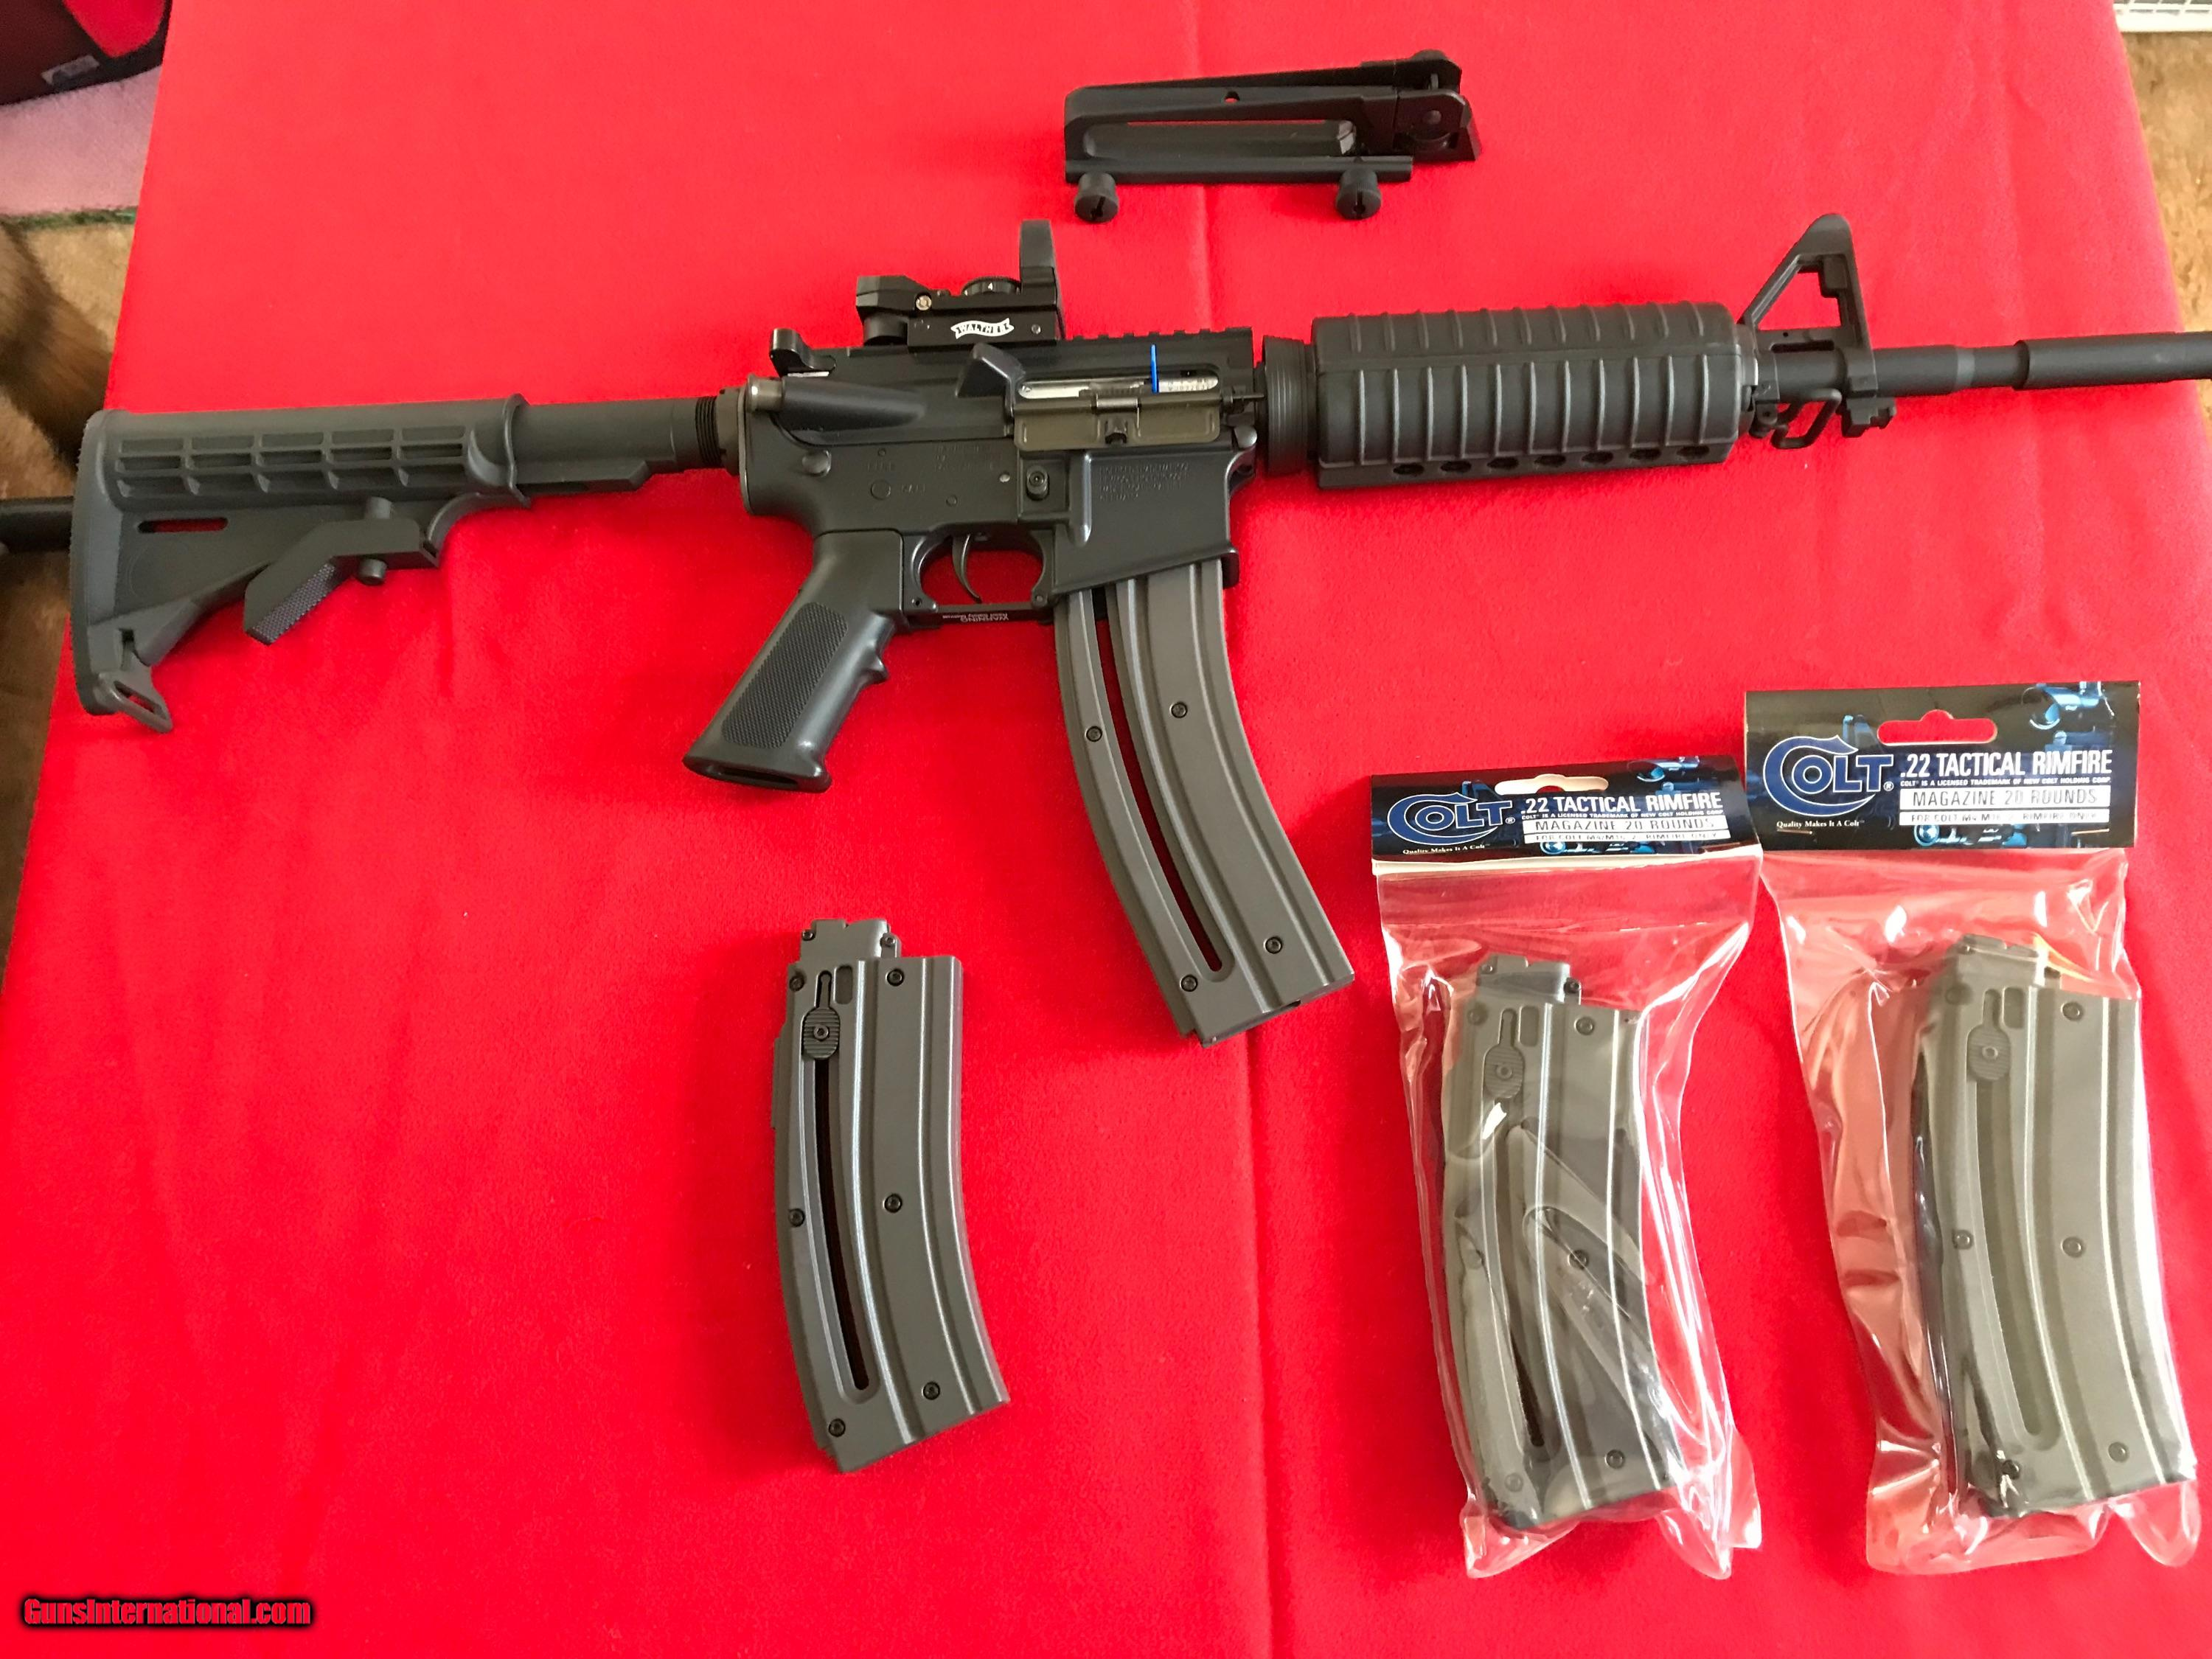 Walther/Colt M4 Carbine 22 Rimfire with Scope and Extra Magazines